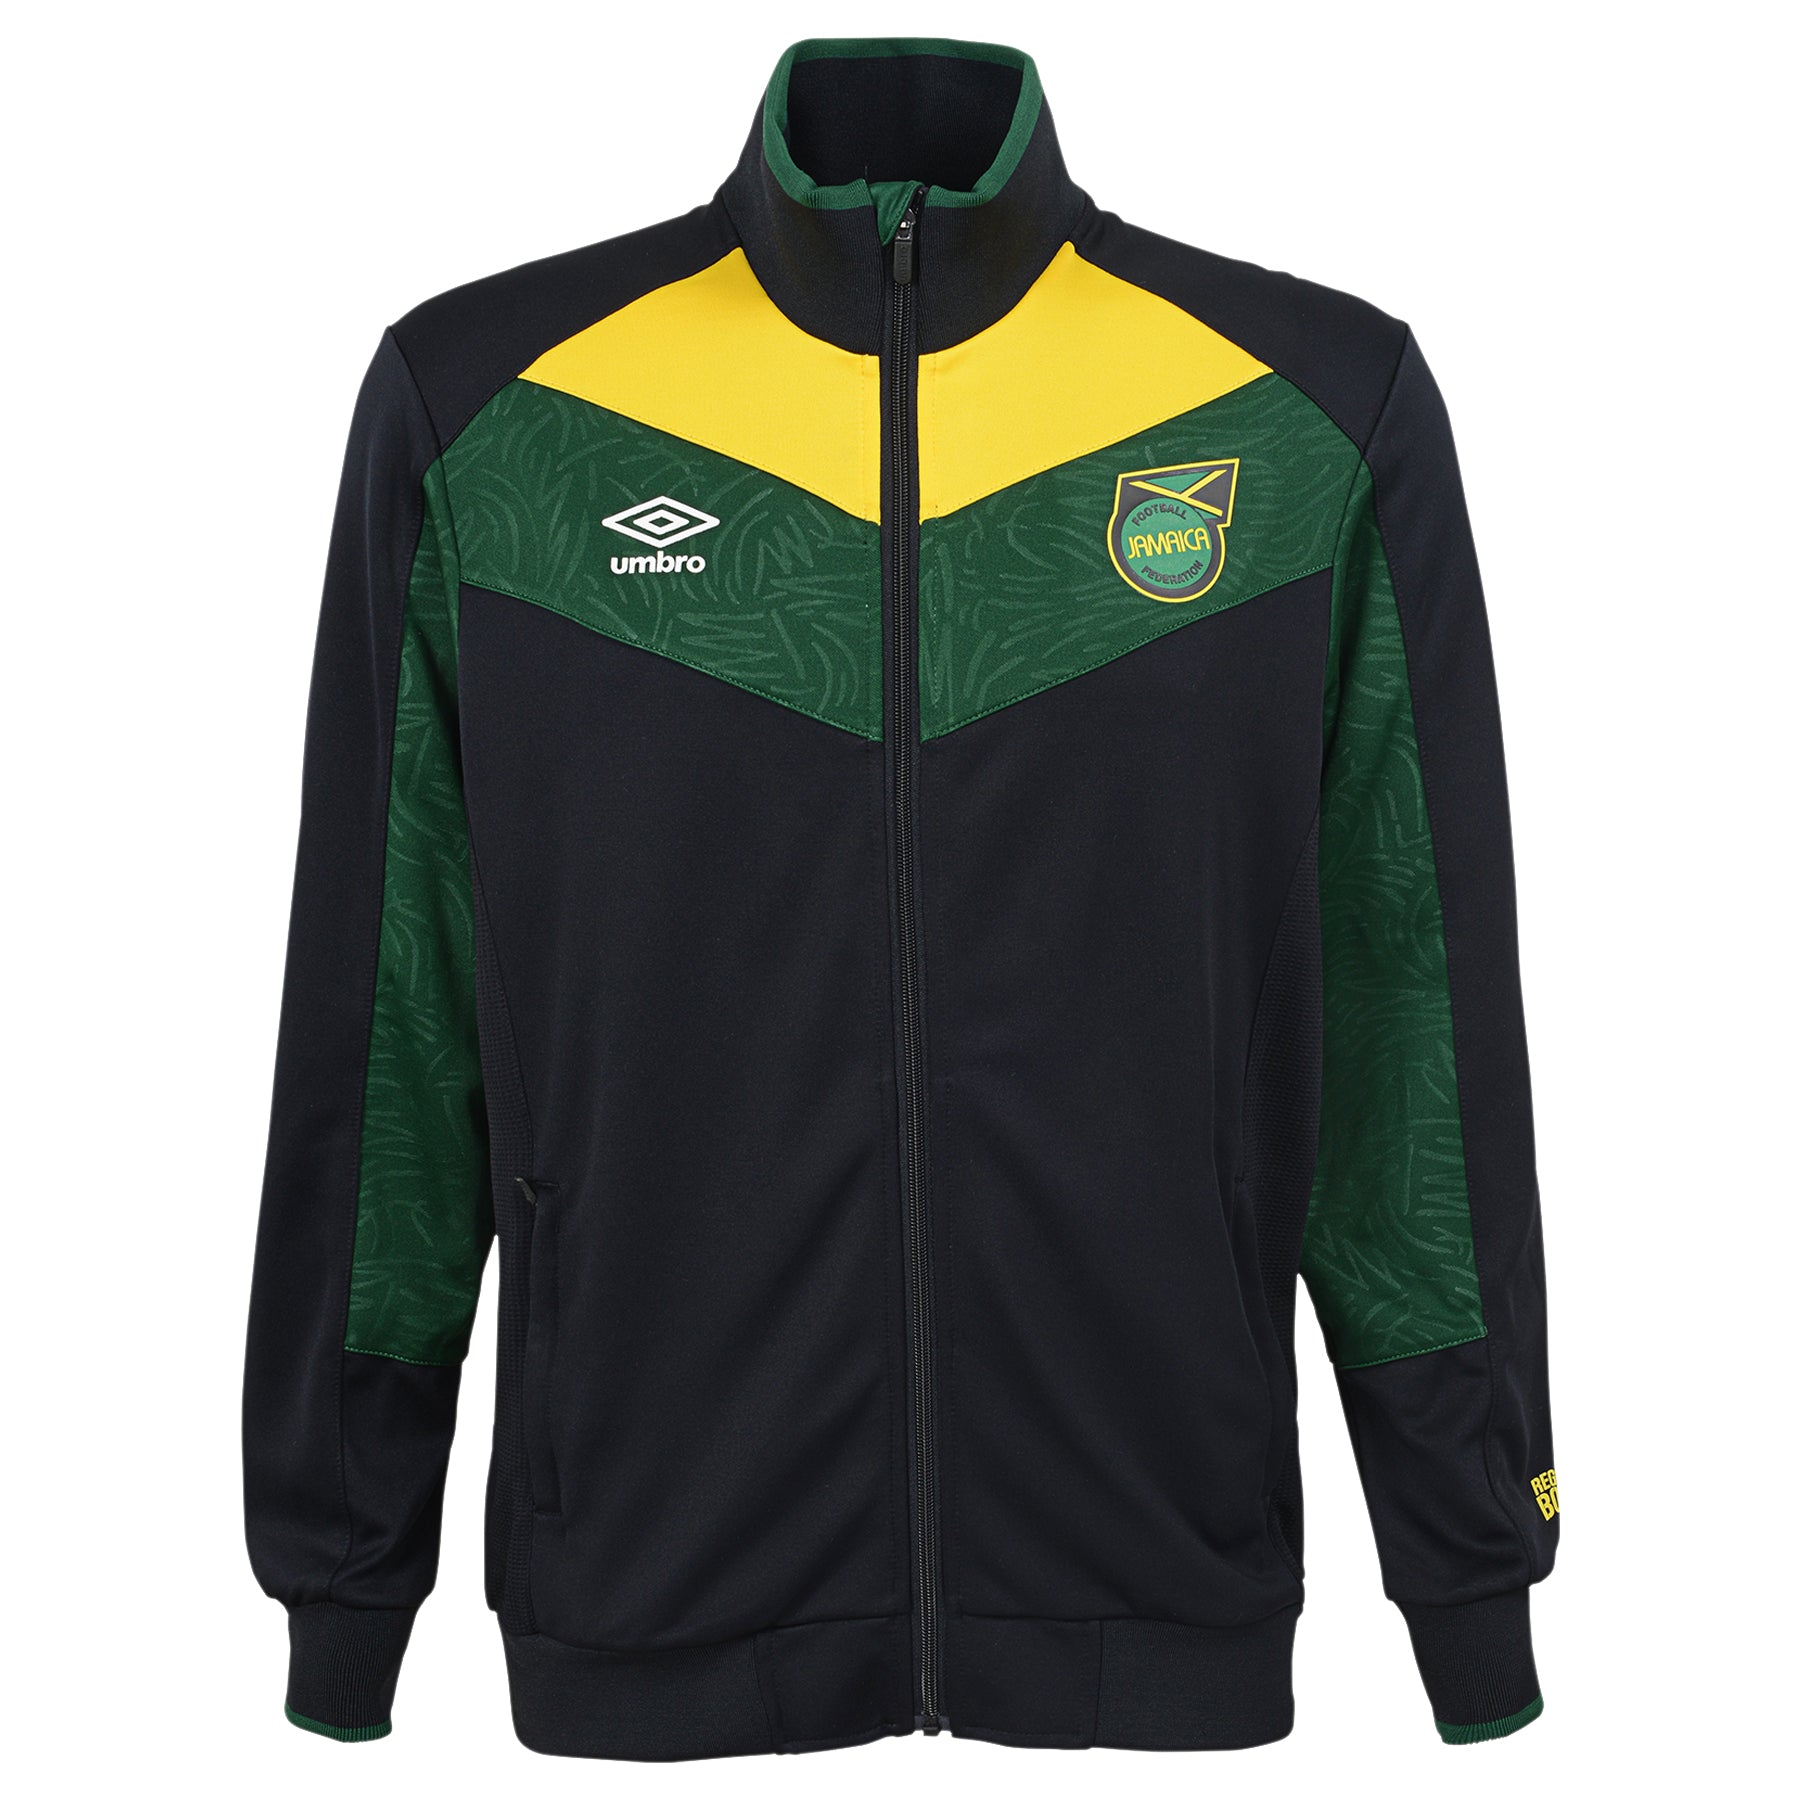 18/19 JAMAICA MEN'S JACKET